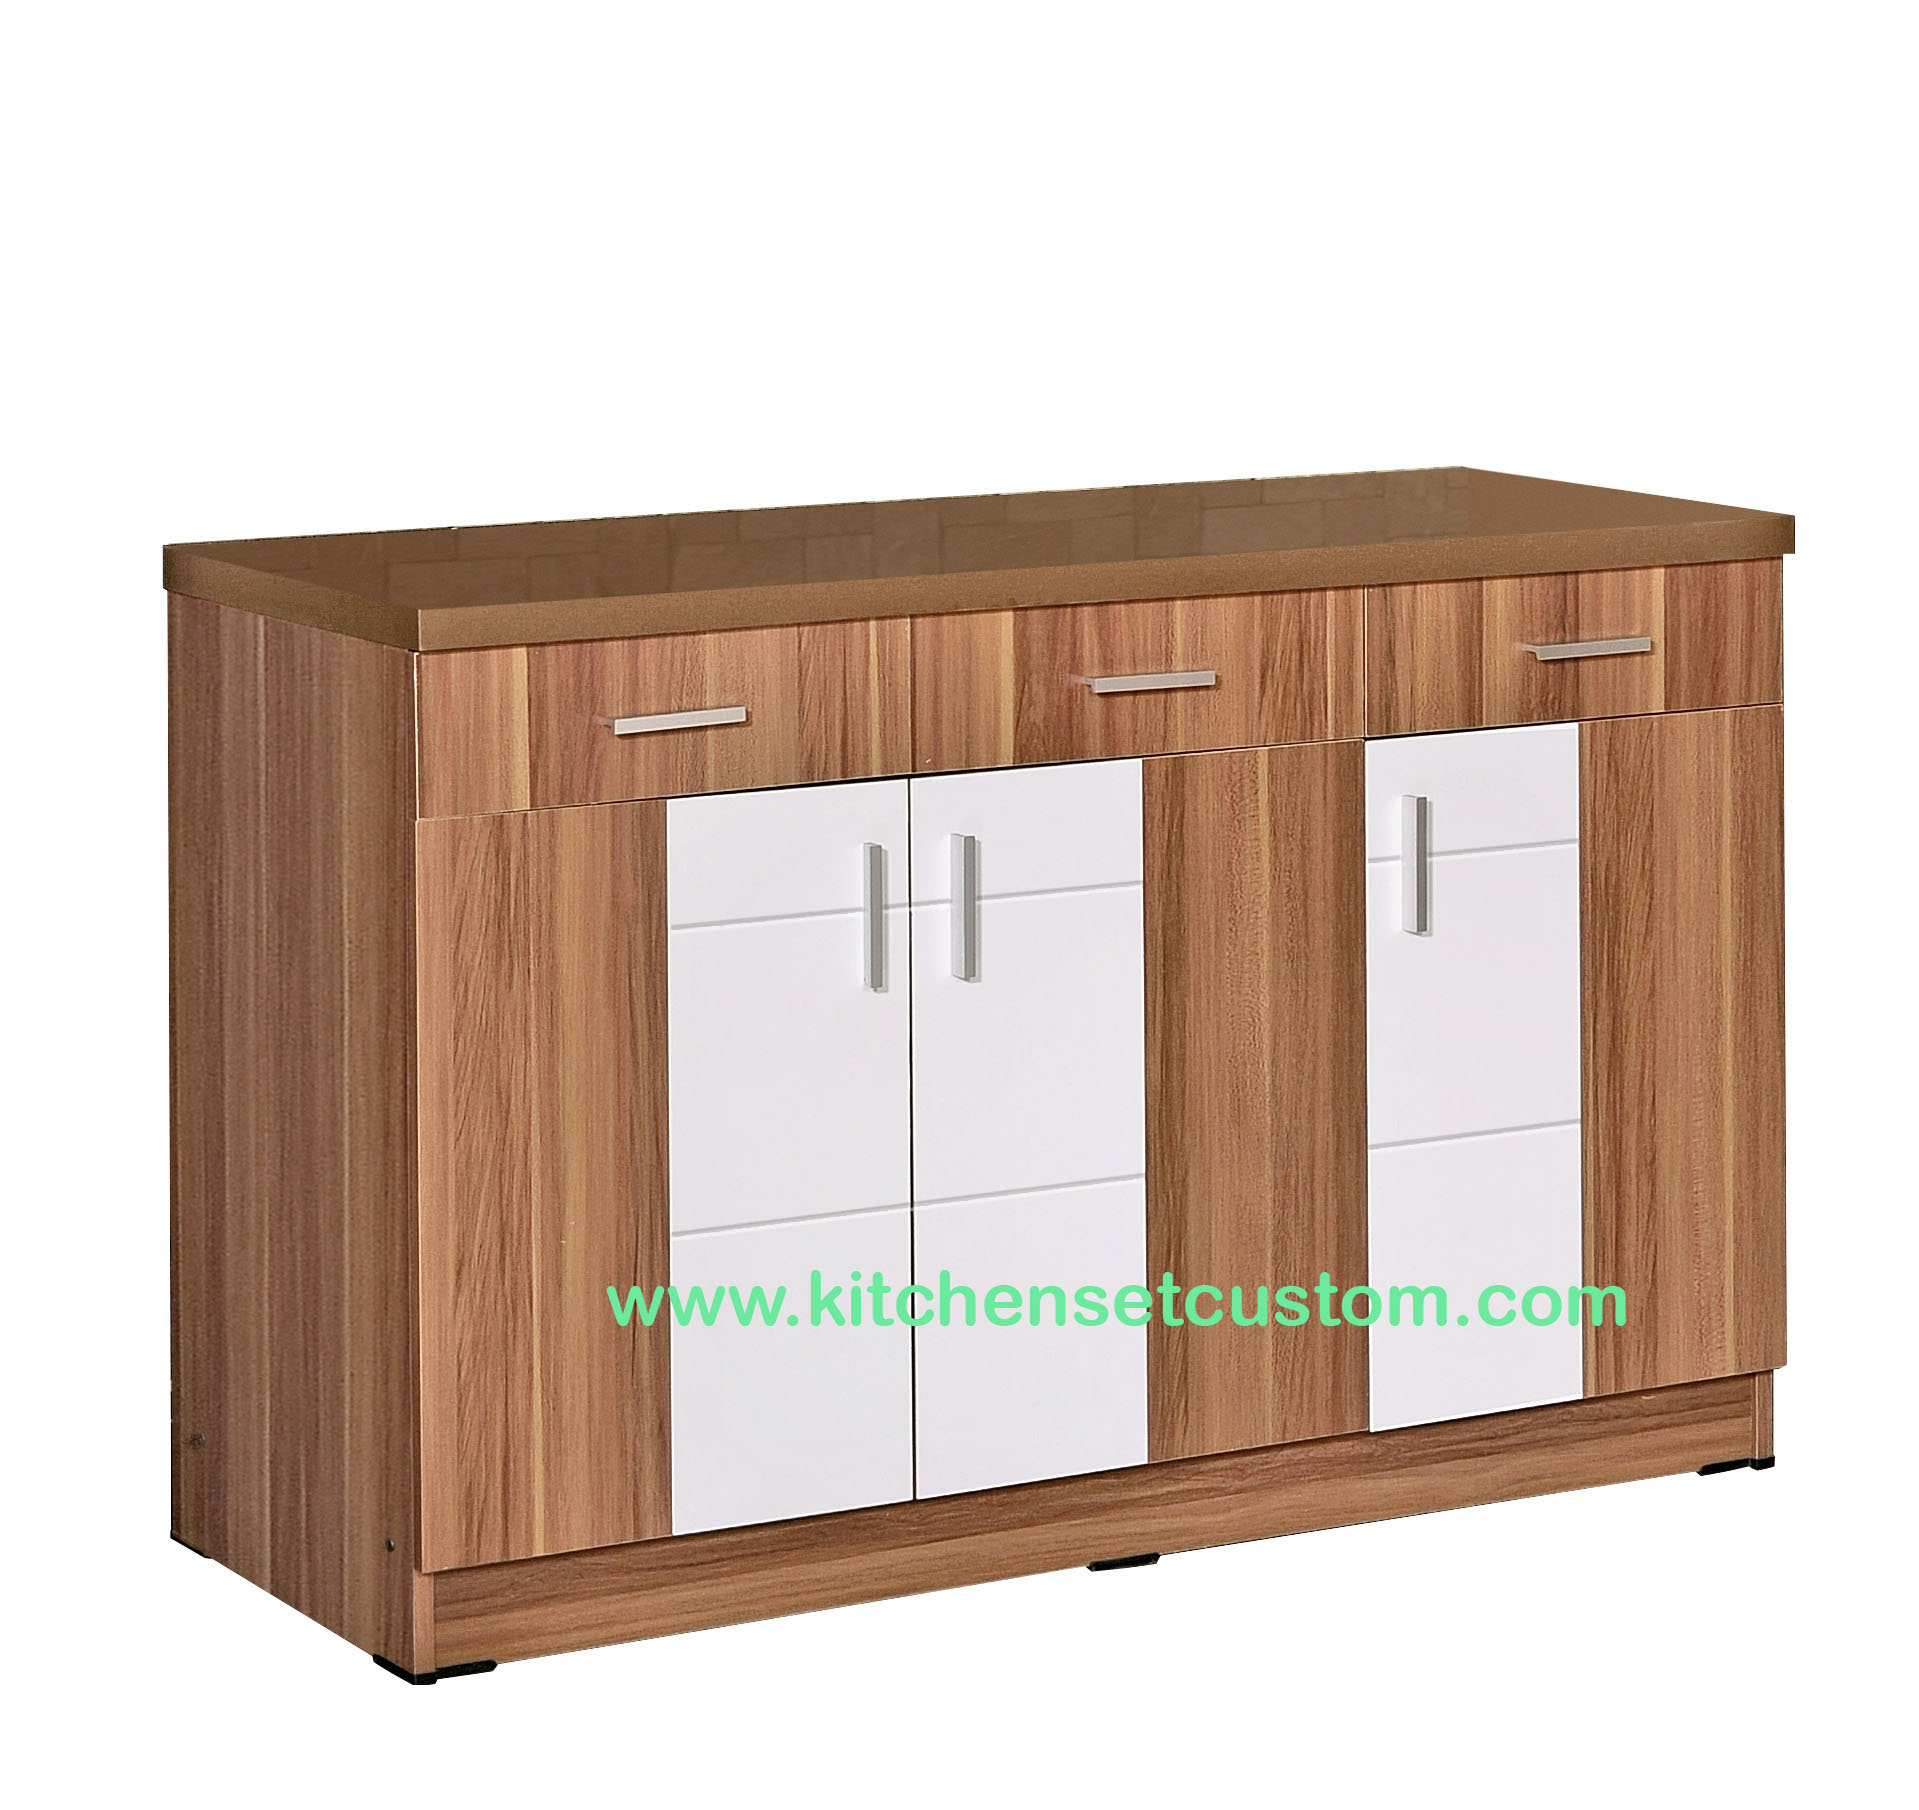 Kitchen Set 3 Pintu KSB 2753 Graver Furniture